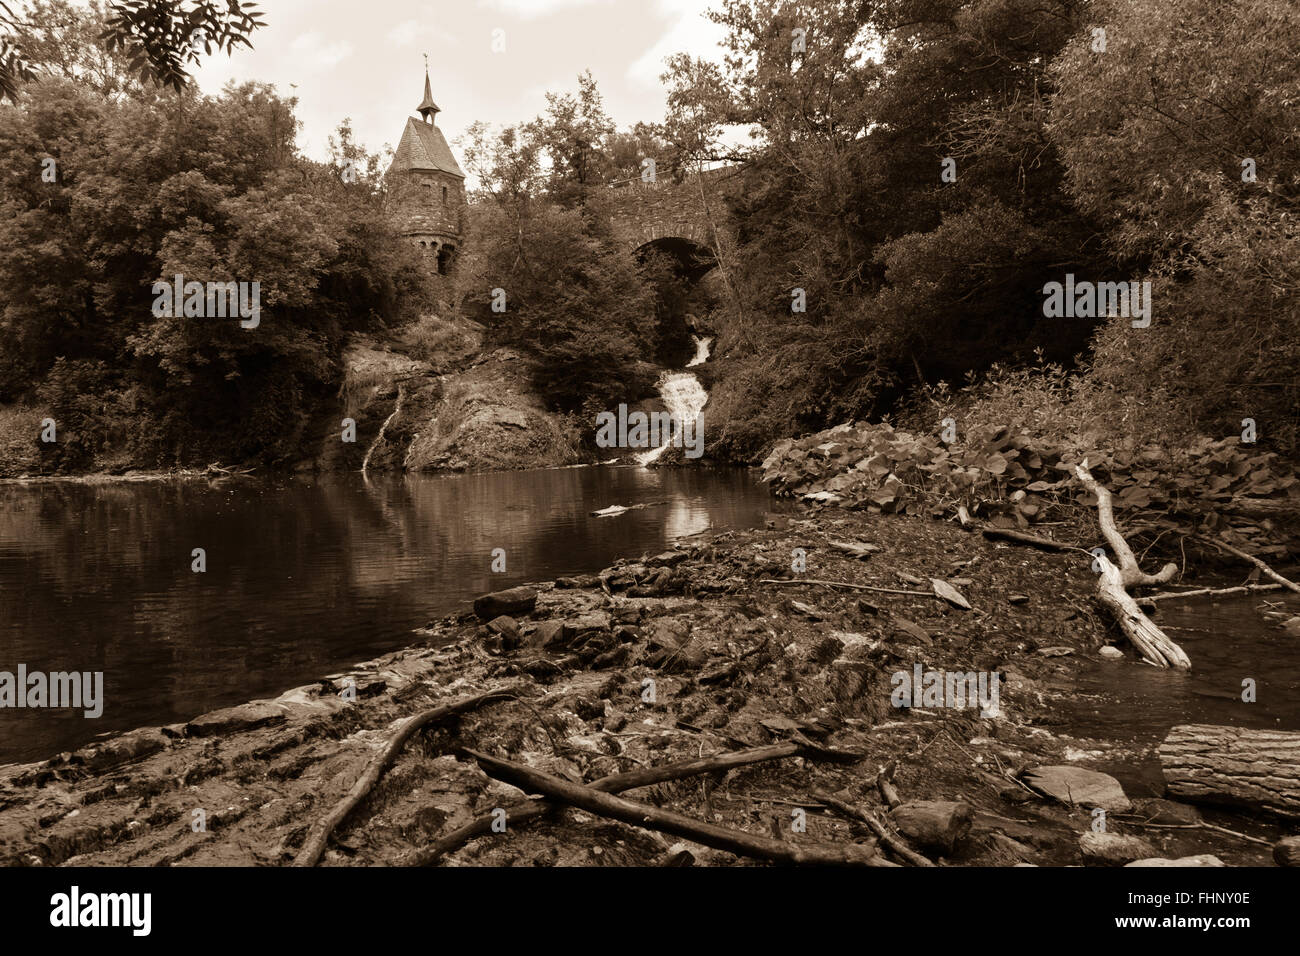 Old bridge, waterfall and tree branches in the foreground-Elzbach water stream near Eltz Castle, Germany - Stock Image